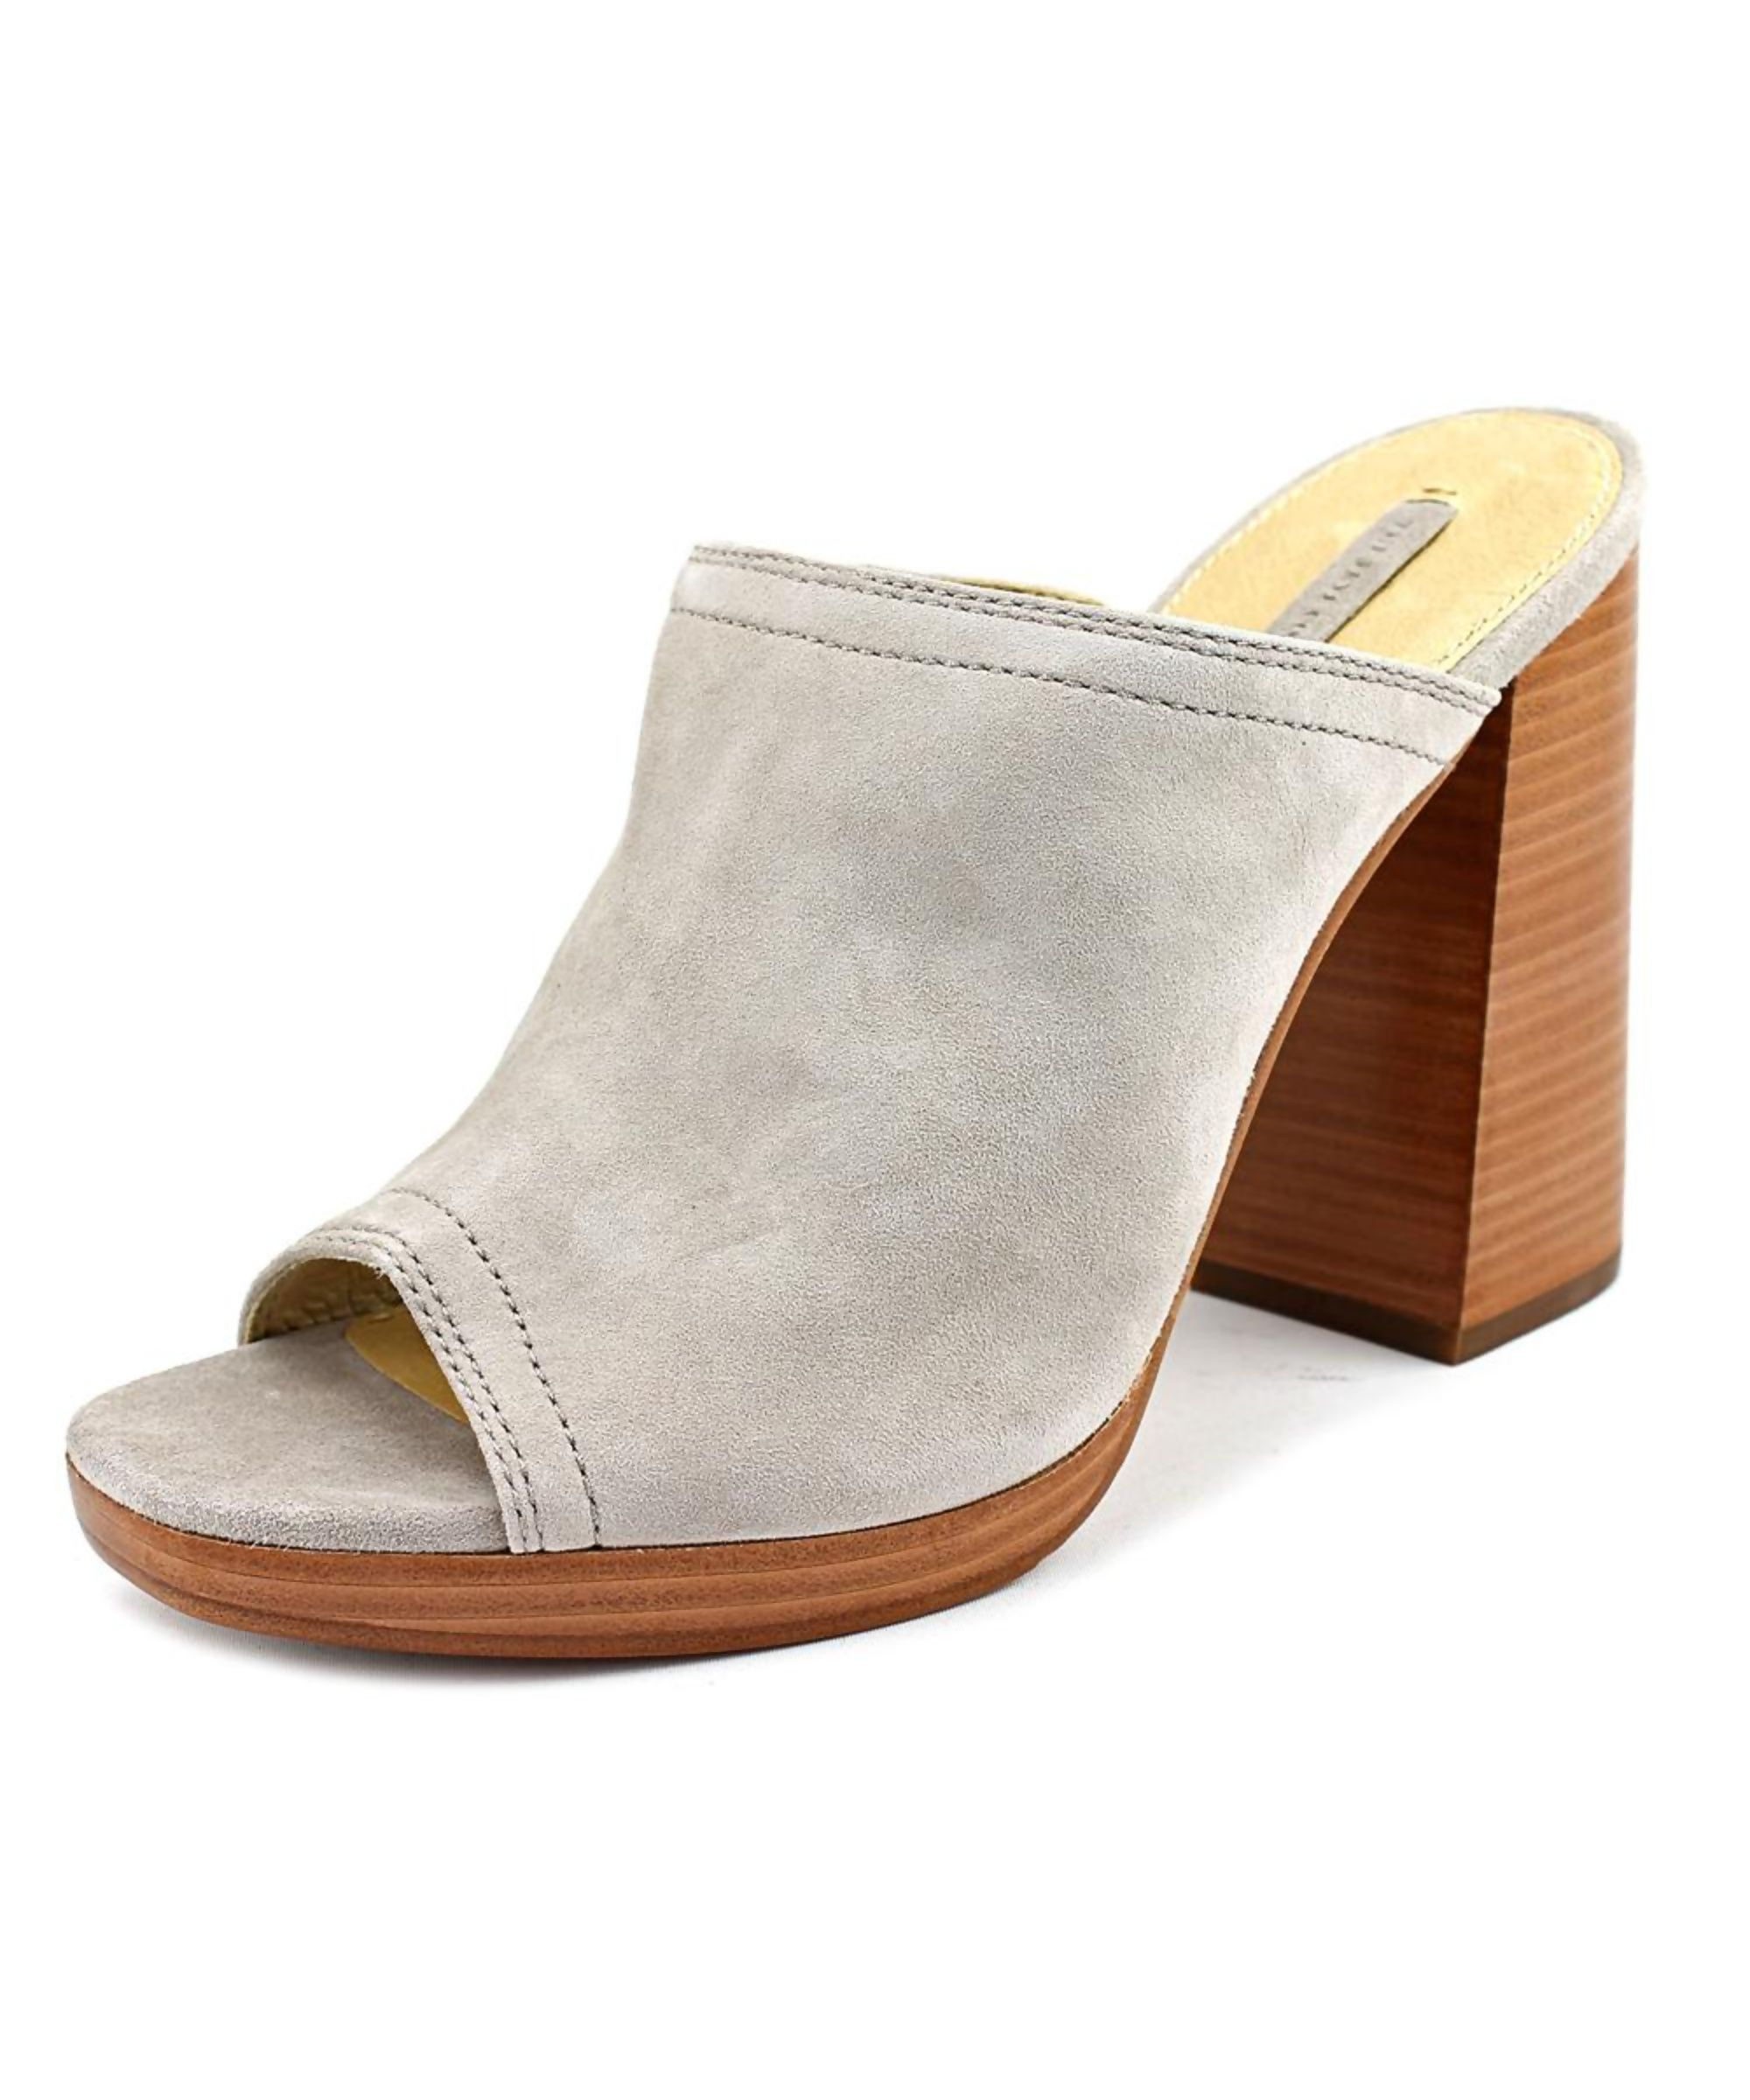 clearance newest Frye Embellished Leather Mules with credit card online SmAJIg